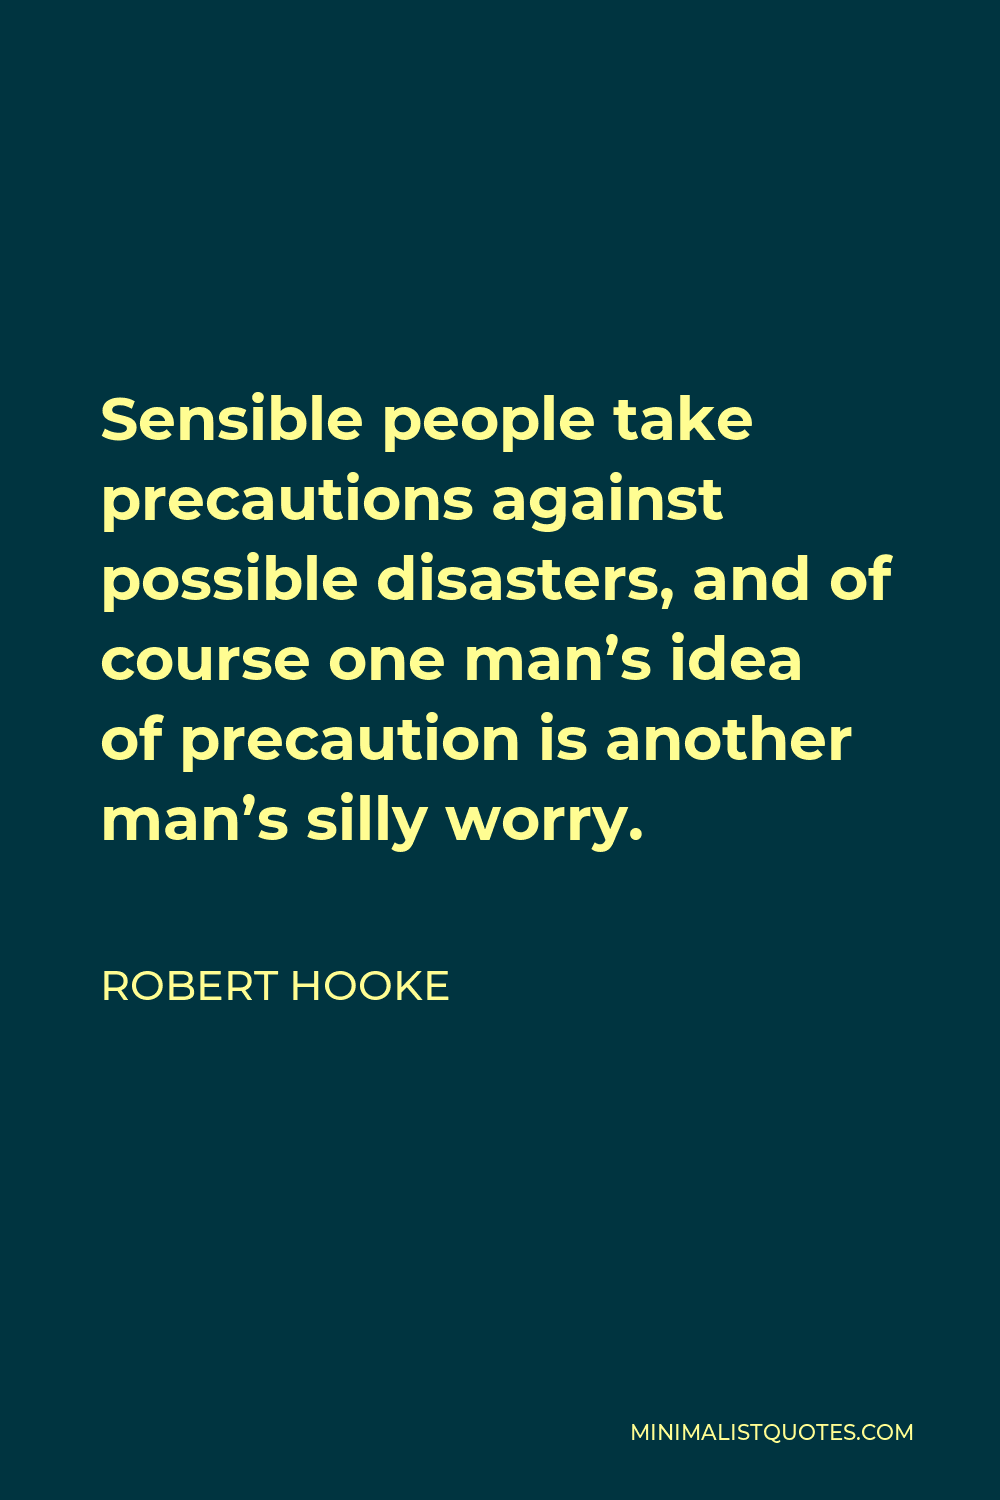 Robert Hooke Quote - Sensible people take precautions against possible disasters, and of course one man's idea of precaution is another man's silly worry.